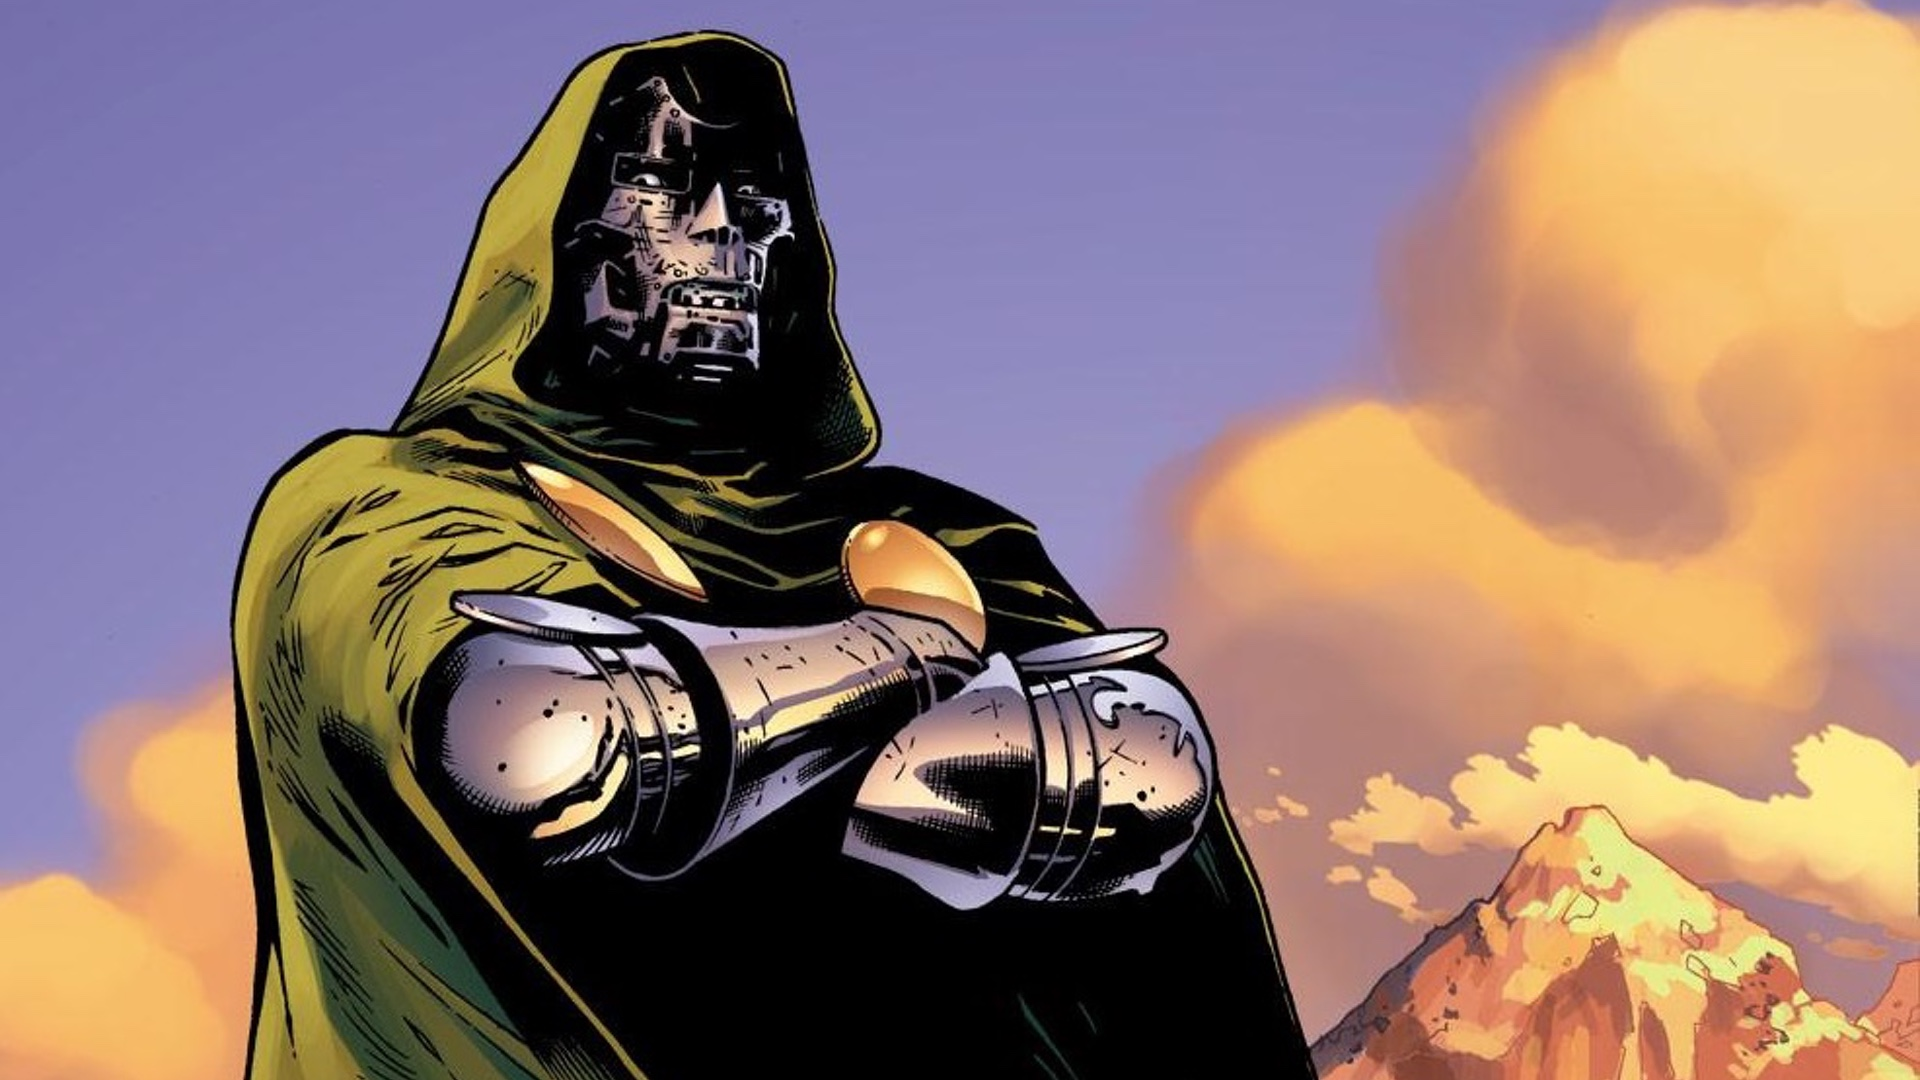 noah-hawley-says-his-doctor-doom-movie-is-done-and-waiting-to-see-if-marvel-moves-on-it-social.jpg